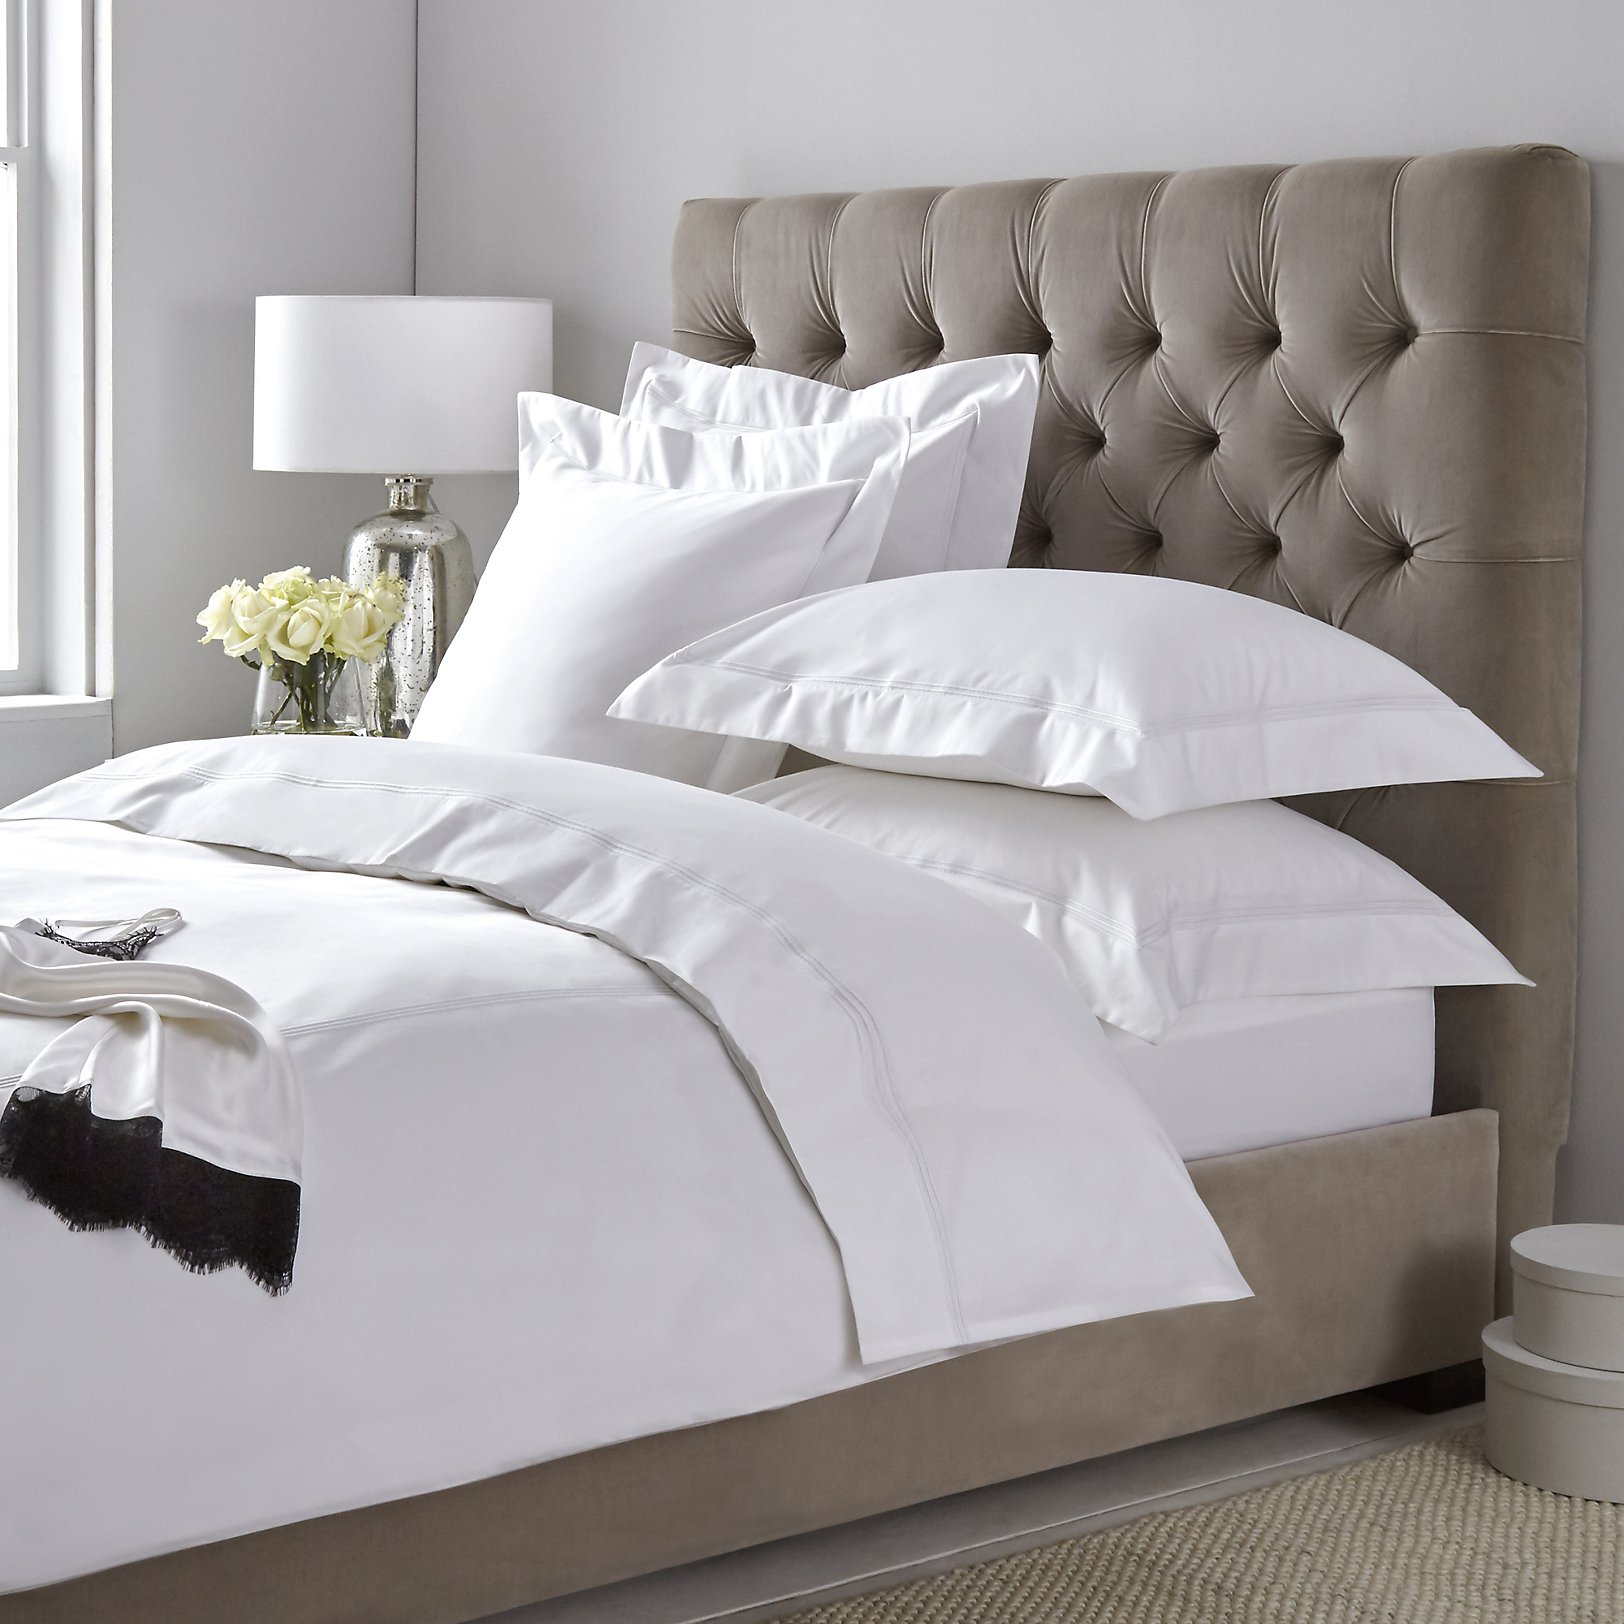 room give design frame elegant to your an home bed look using white